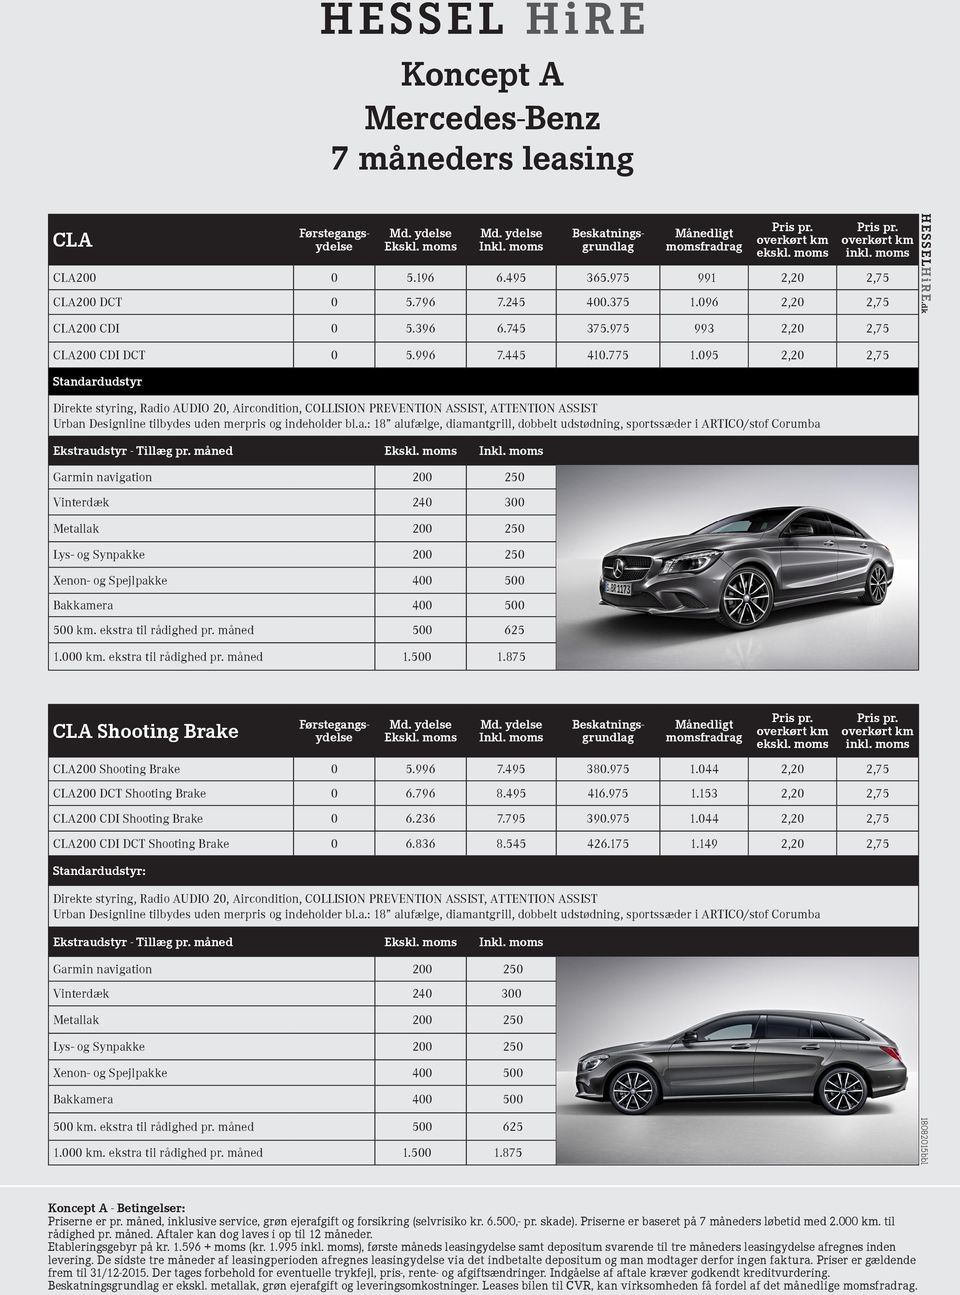 996 7.495 380.975 1.044 2,20 2,75 CLA200 DCT Shooting Brake 0 6.796 8.495 416.975 1.153 2,20 2,75 CLA200 CDI Shooting Brake 0 6.236 7.795 390.975 1.044 2,20 2,75 CLA200 CDI DCT Shooting Brake 0 6.